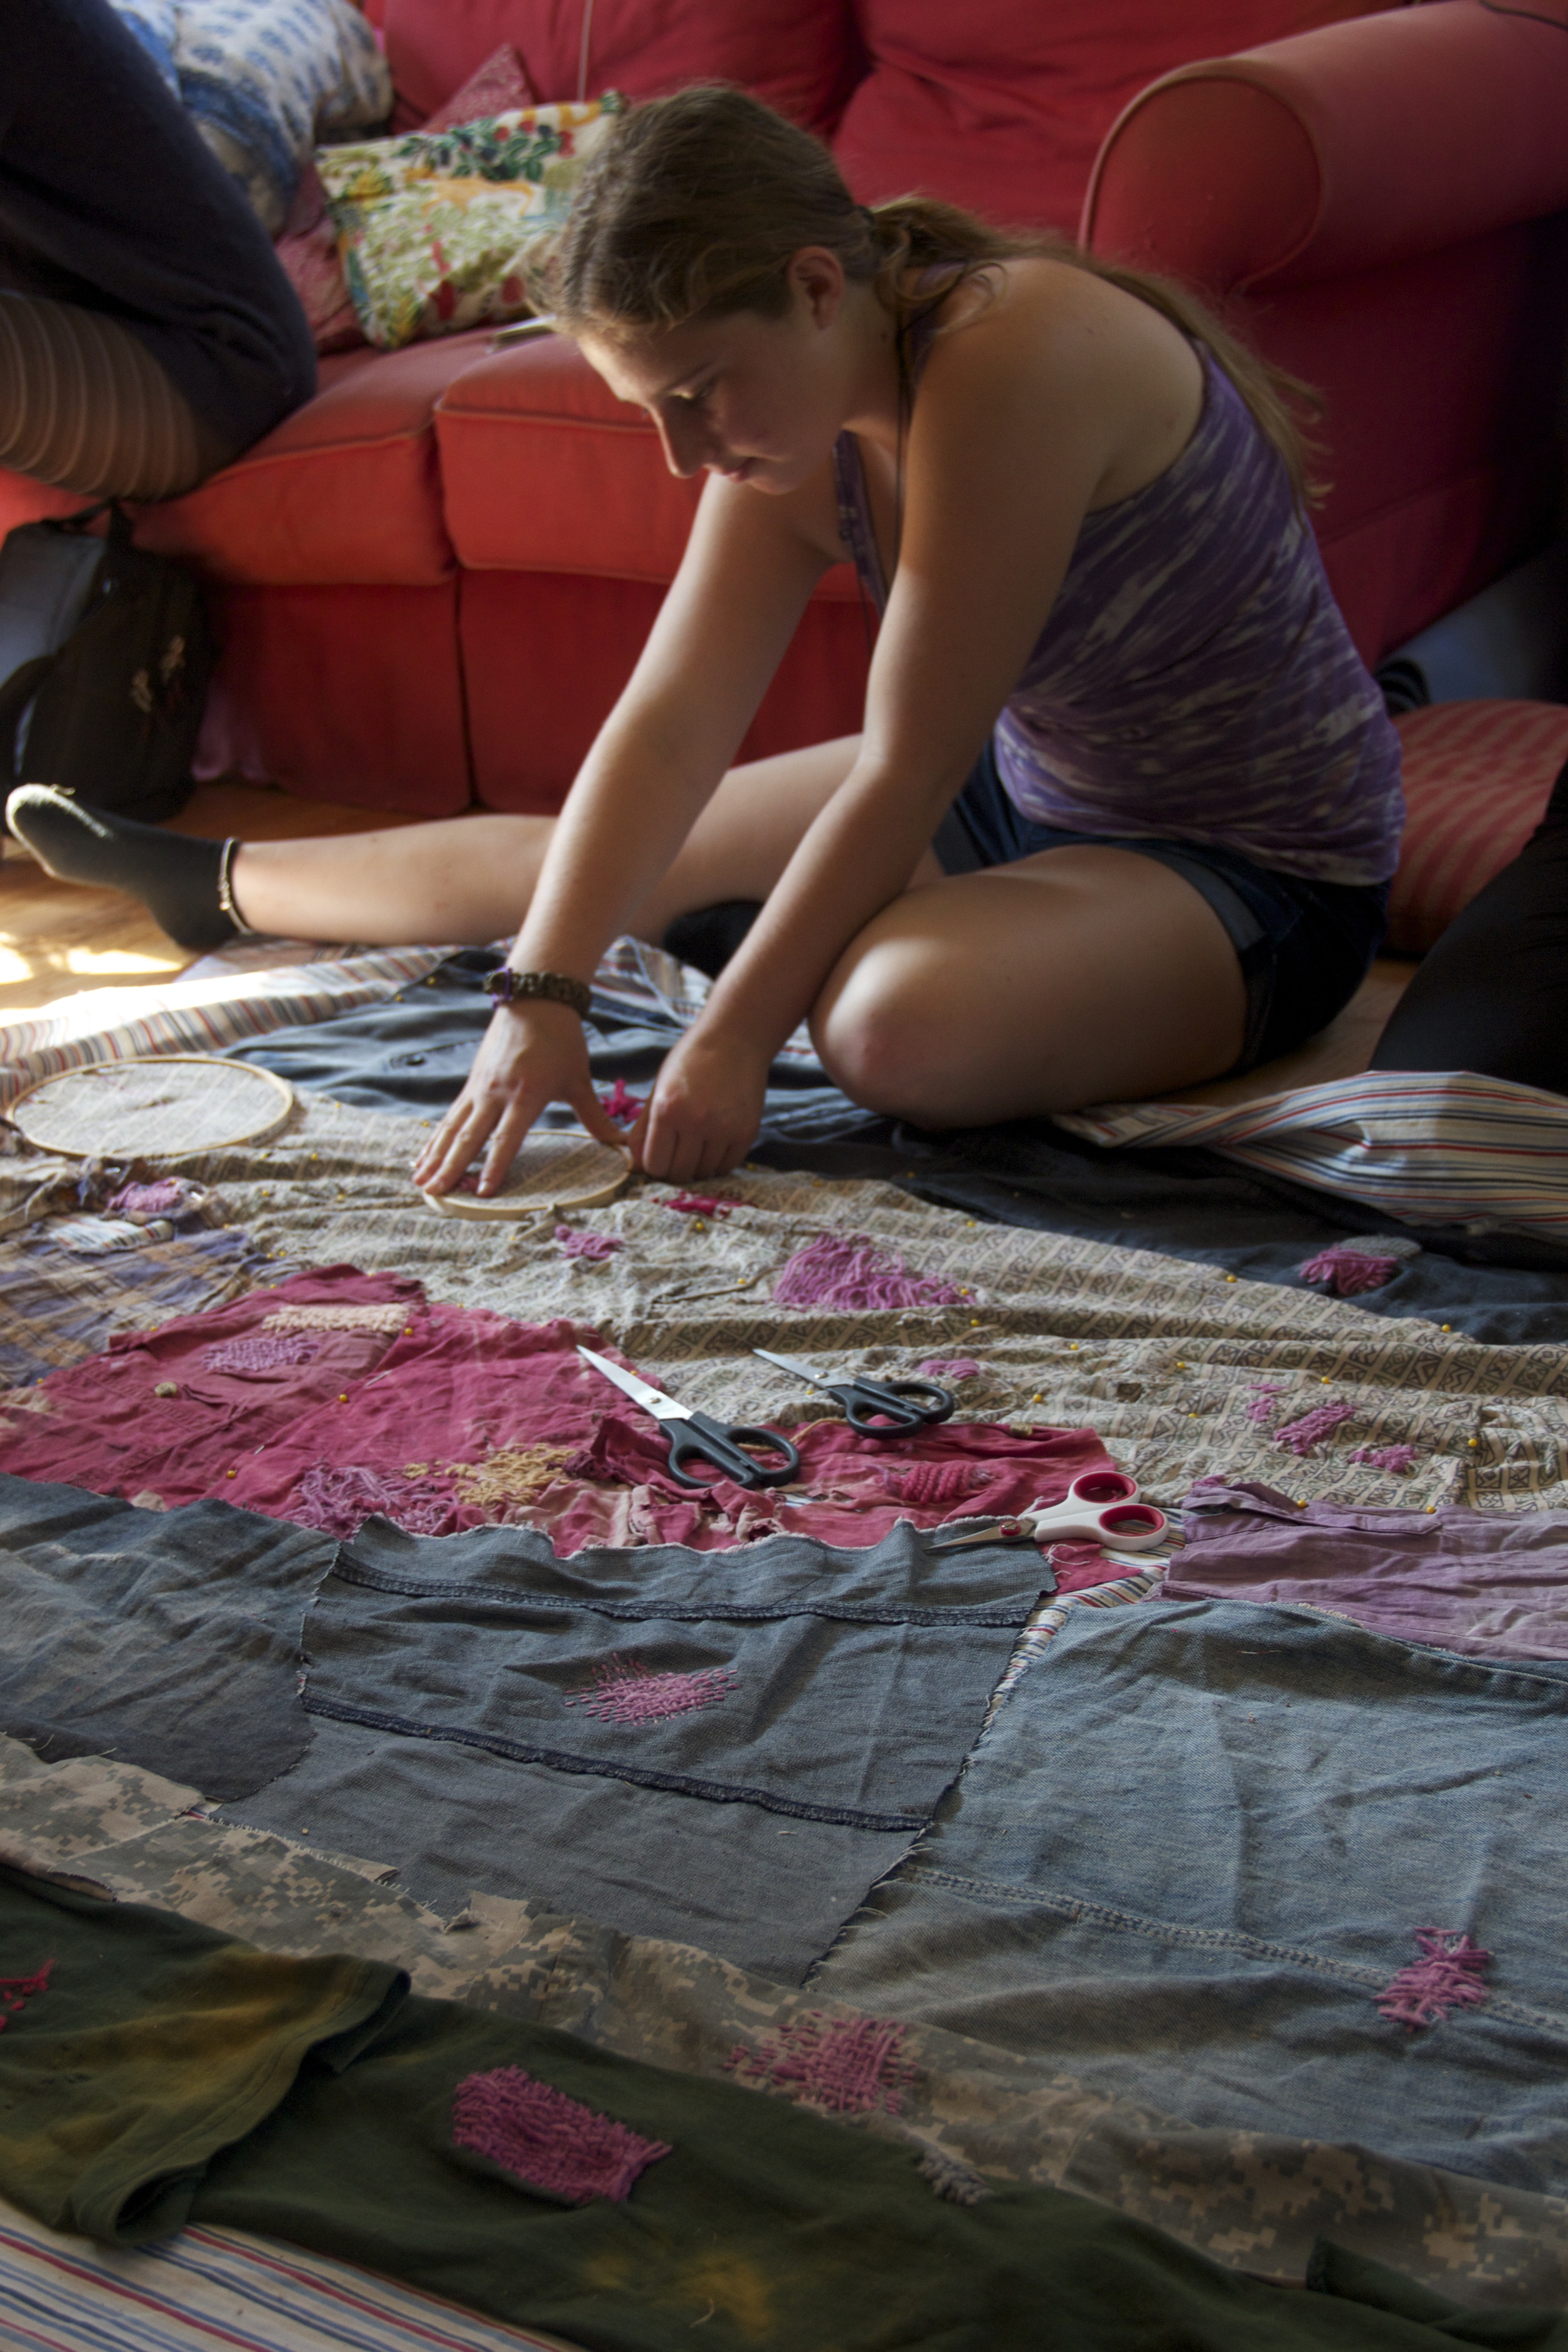 mending and stitching on the quilt for mending patriotism